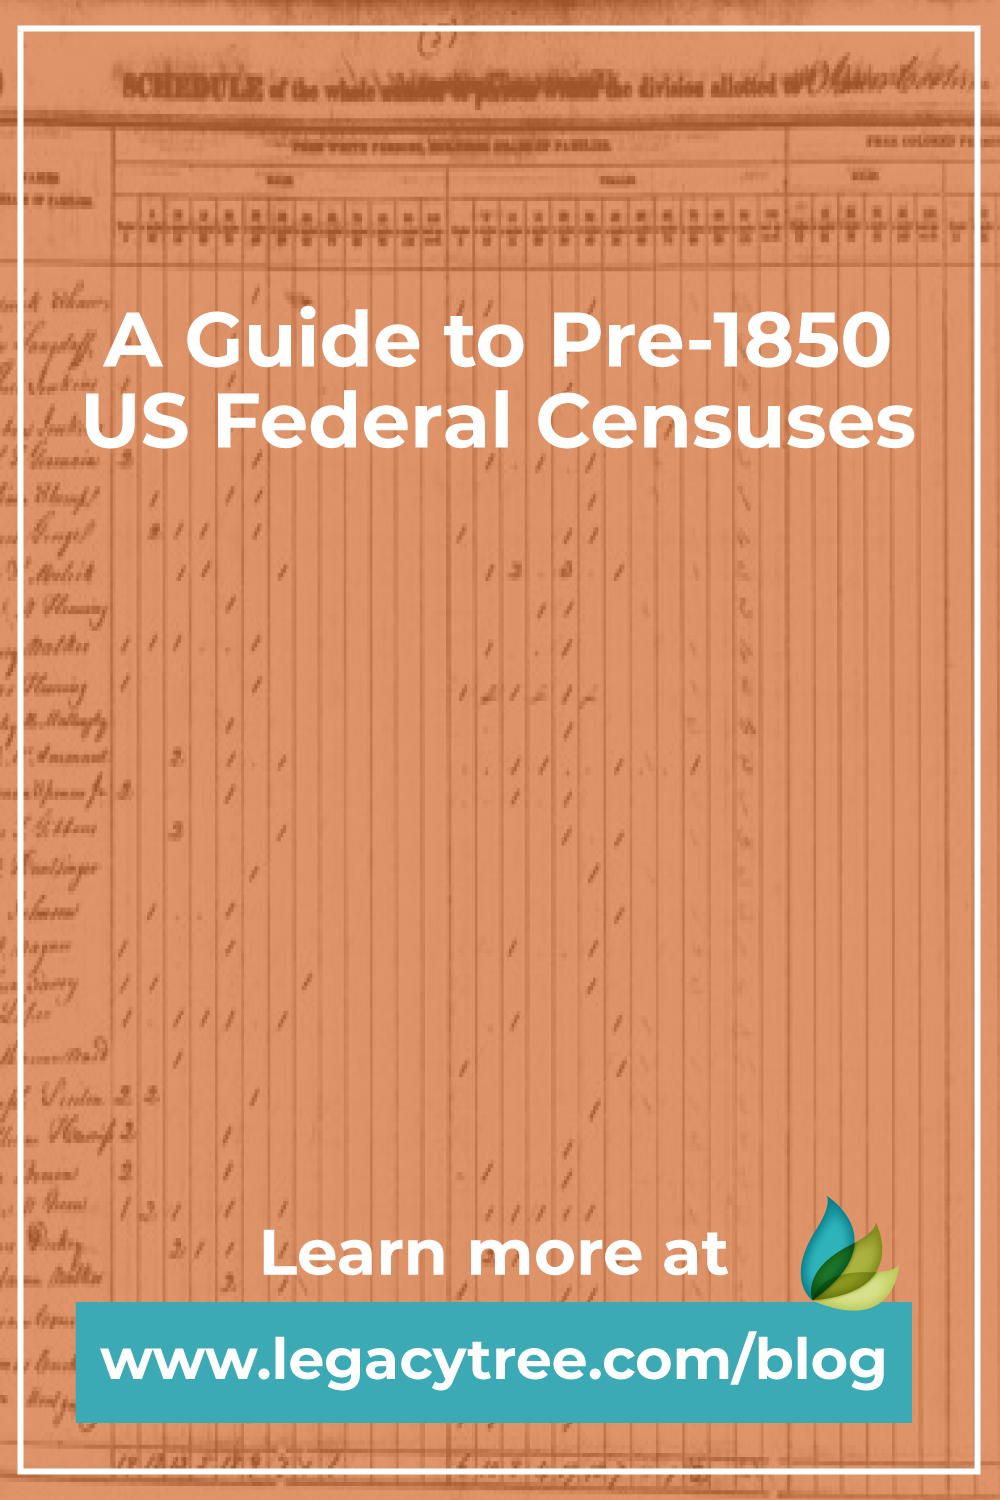 This guide will discuss what kind of information you can expect to find in pre-1850 US Federal Censuses and how to use those documents in your own research.